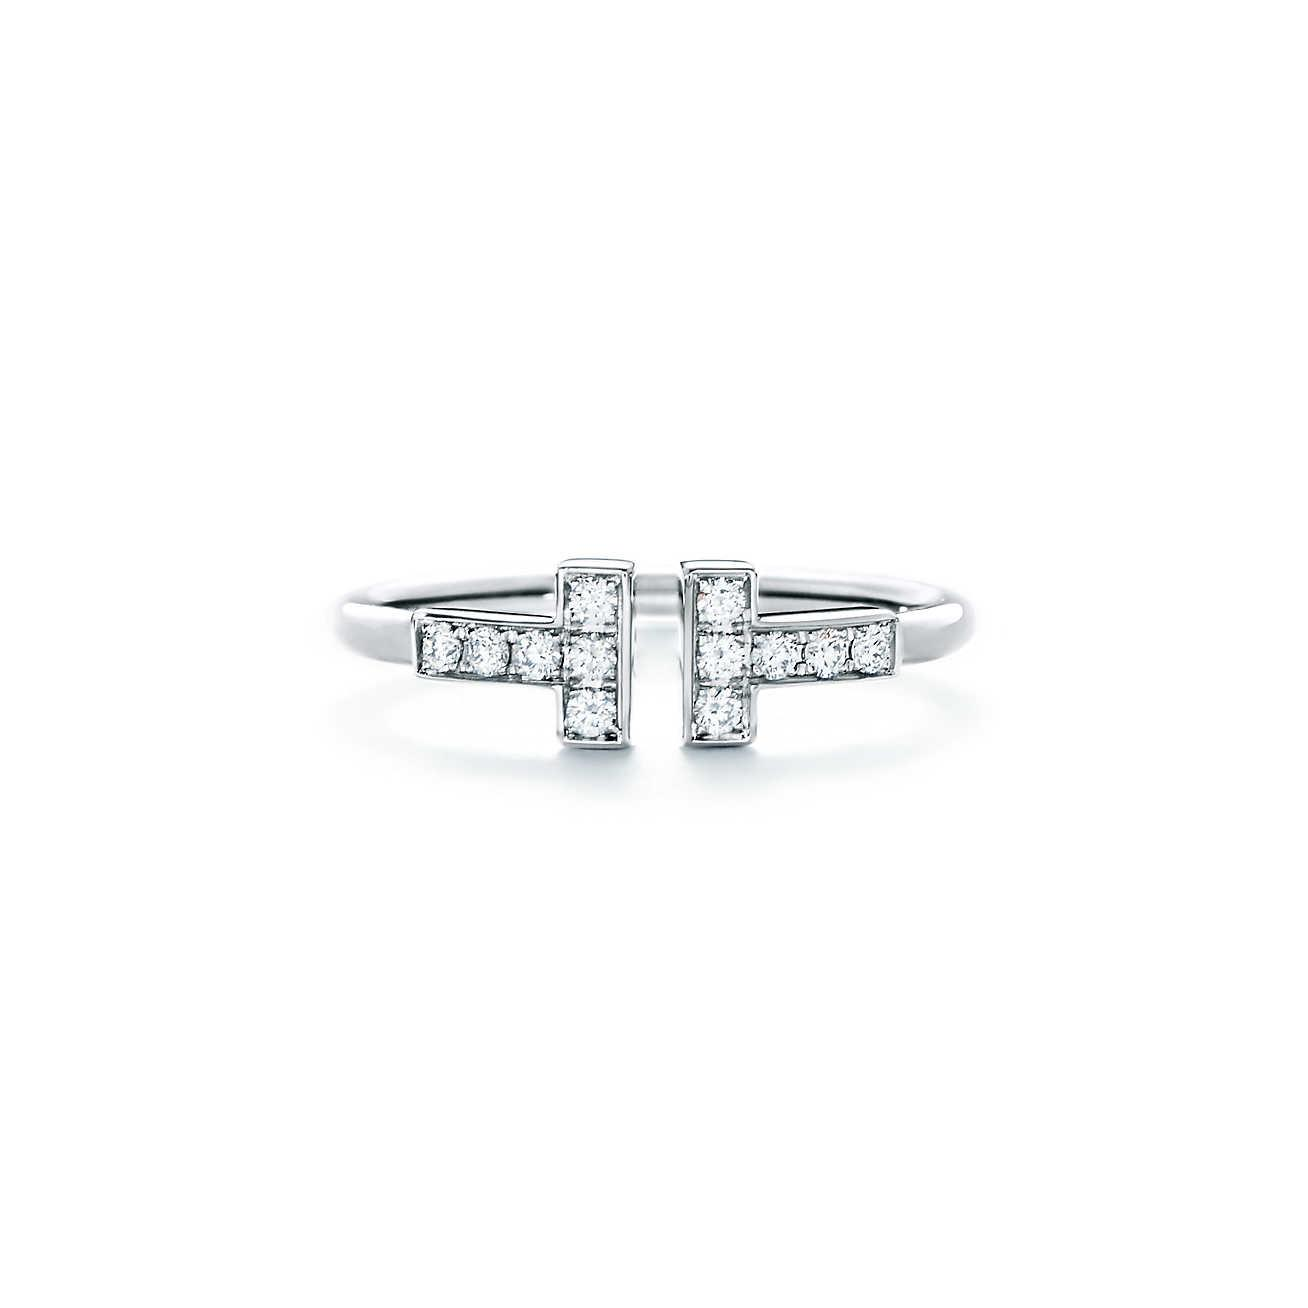 Tiffany T wire ring in 18k white gold with diamonds - Size 6